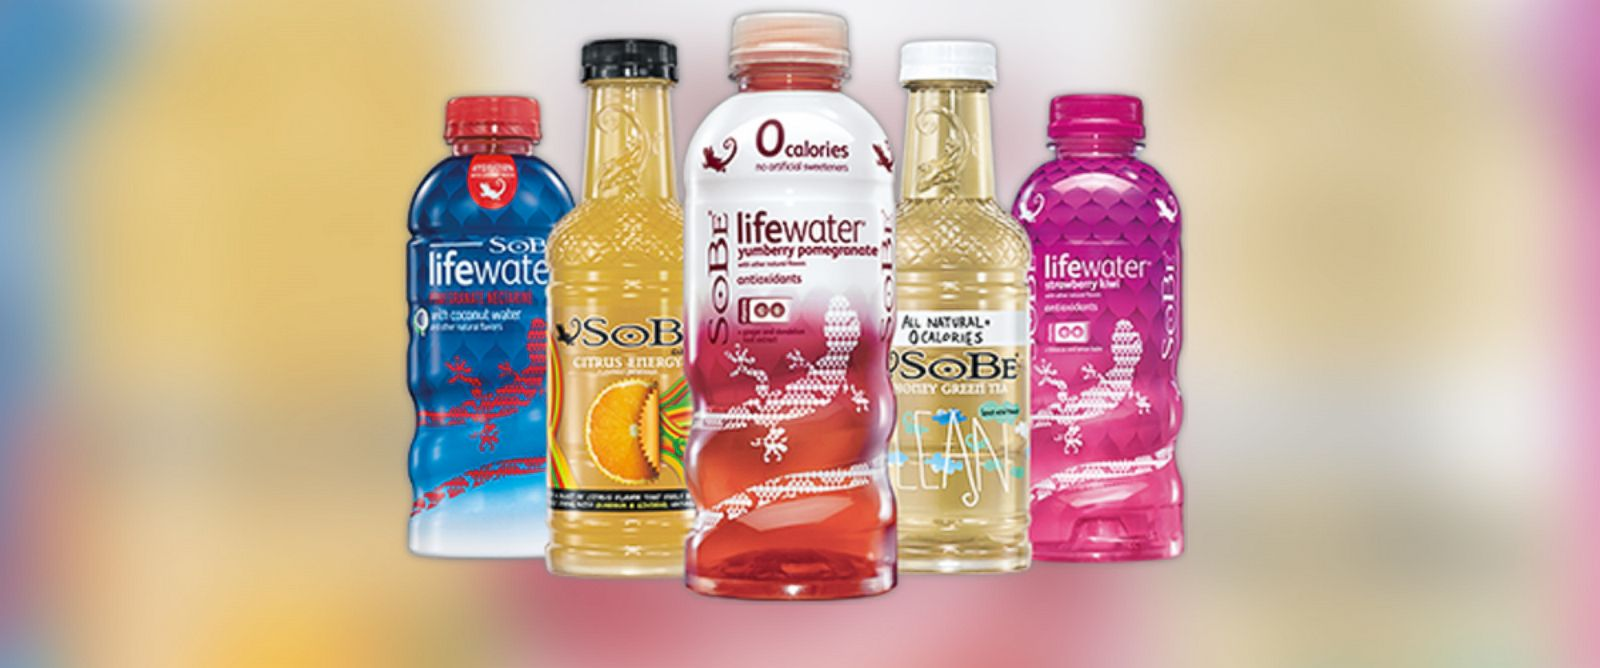 PHOTO: Bottles of Sobe beverages are pictured.